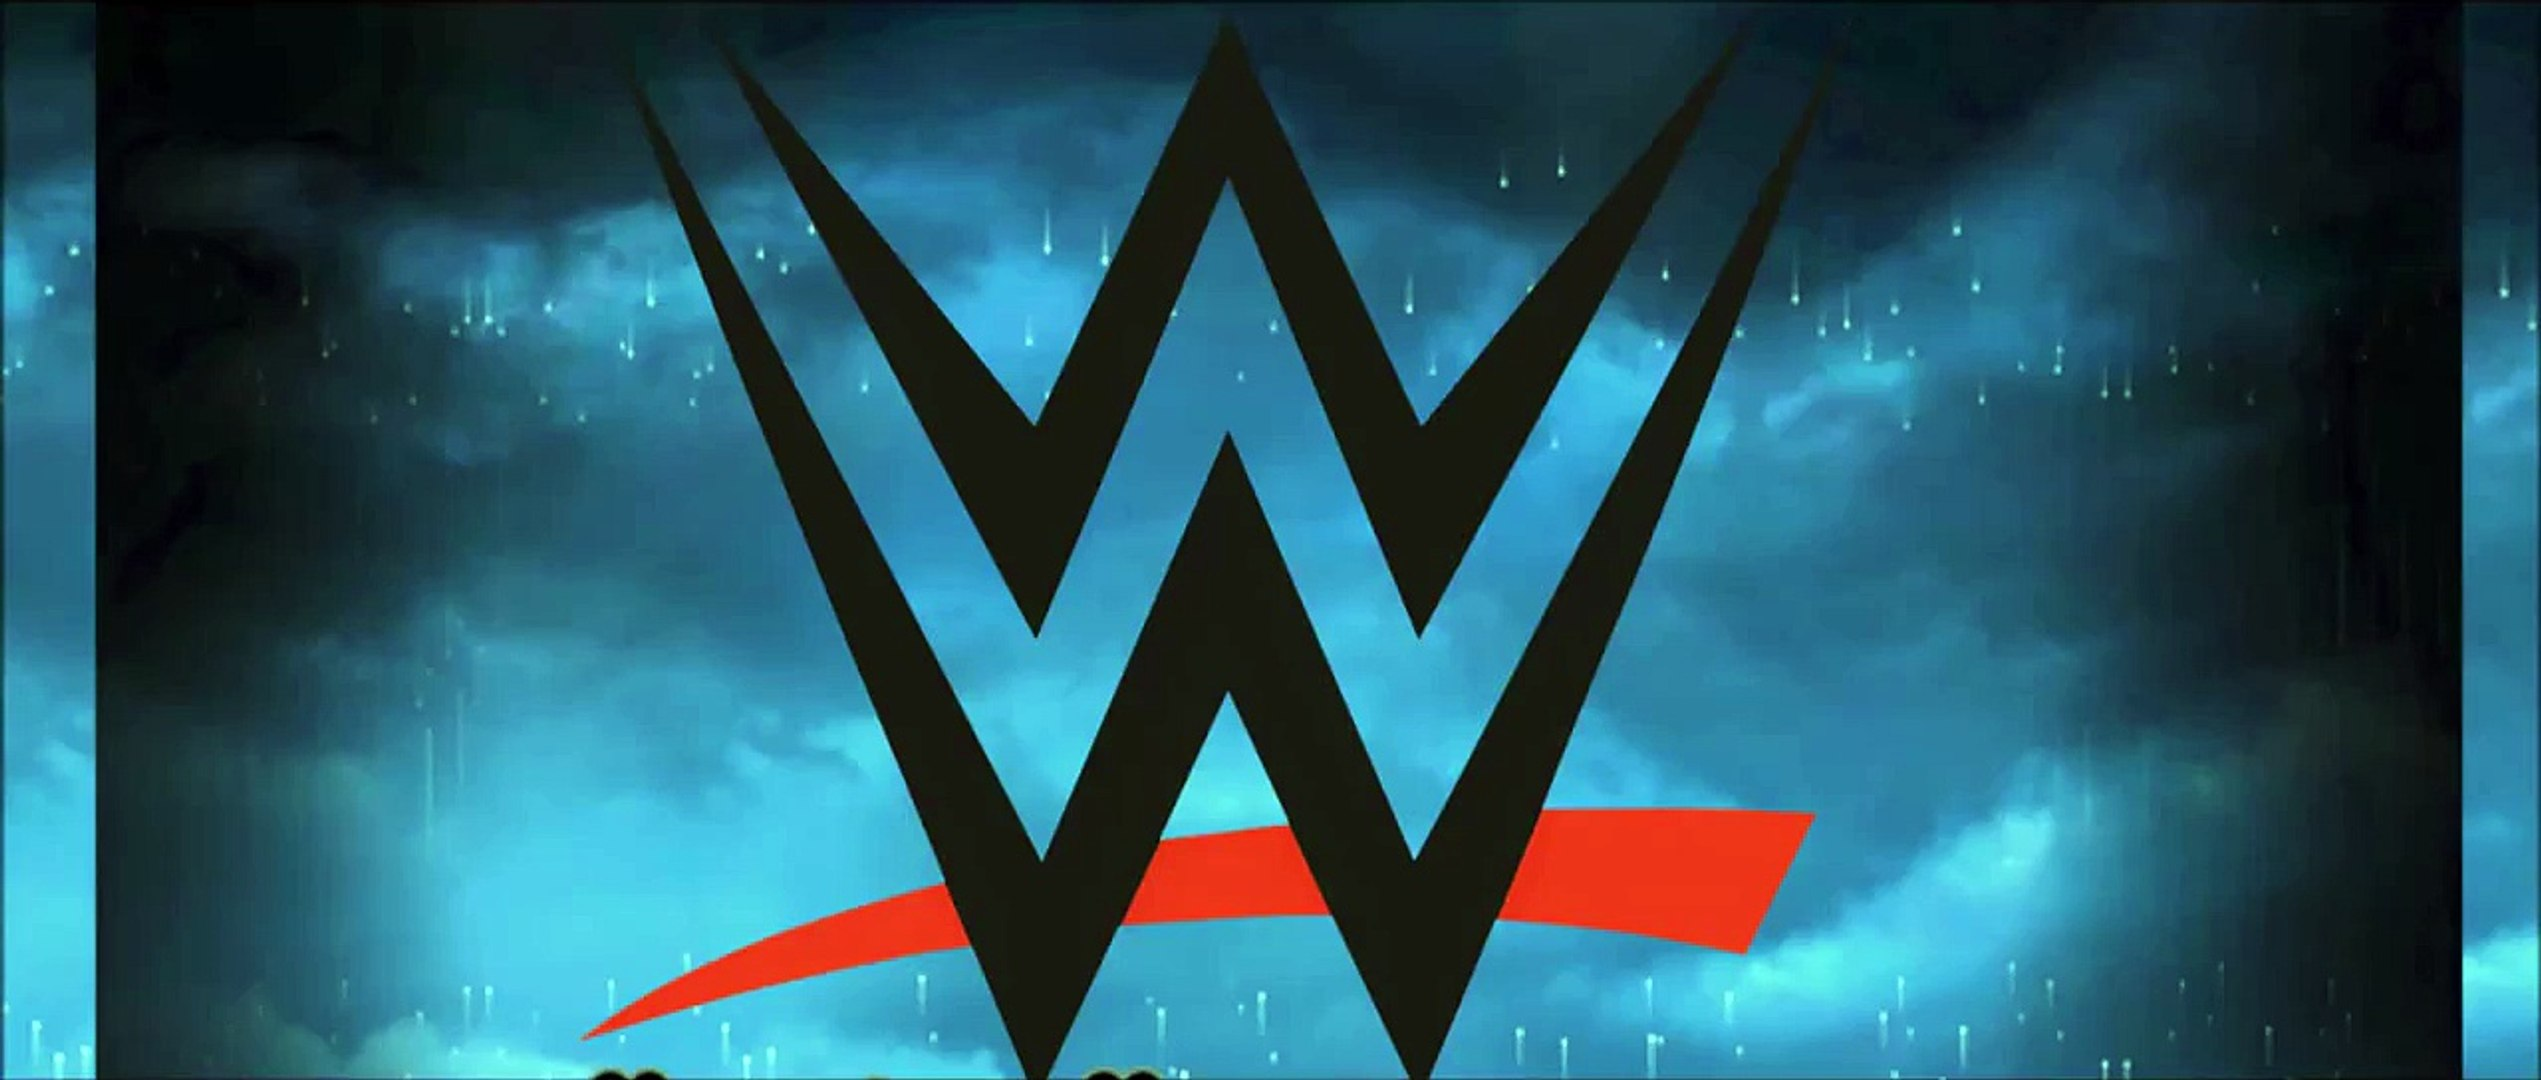 Major Backstage News On WWE - WWE Network & A Slew Of WWE Superstars Being Released